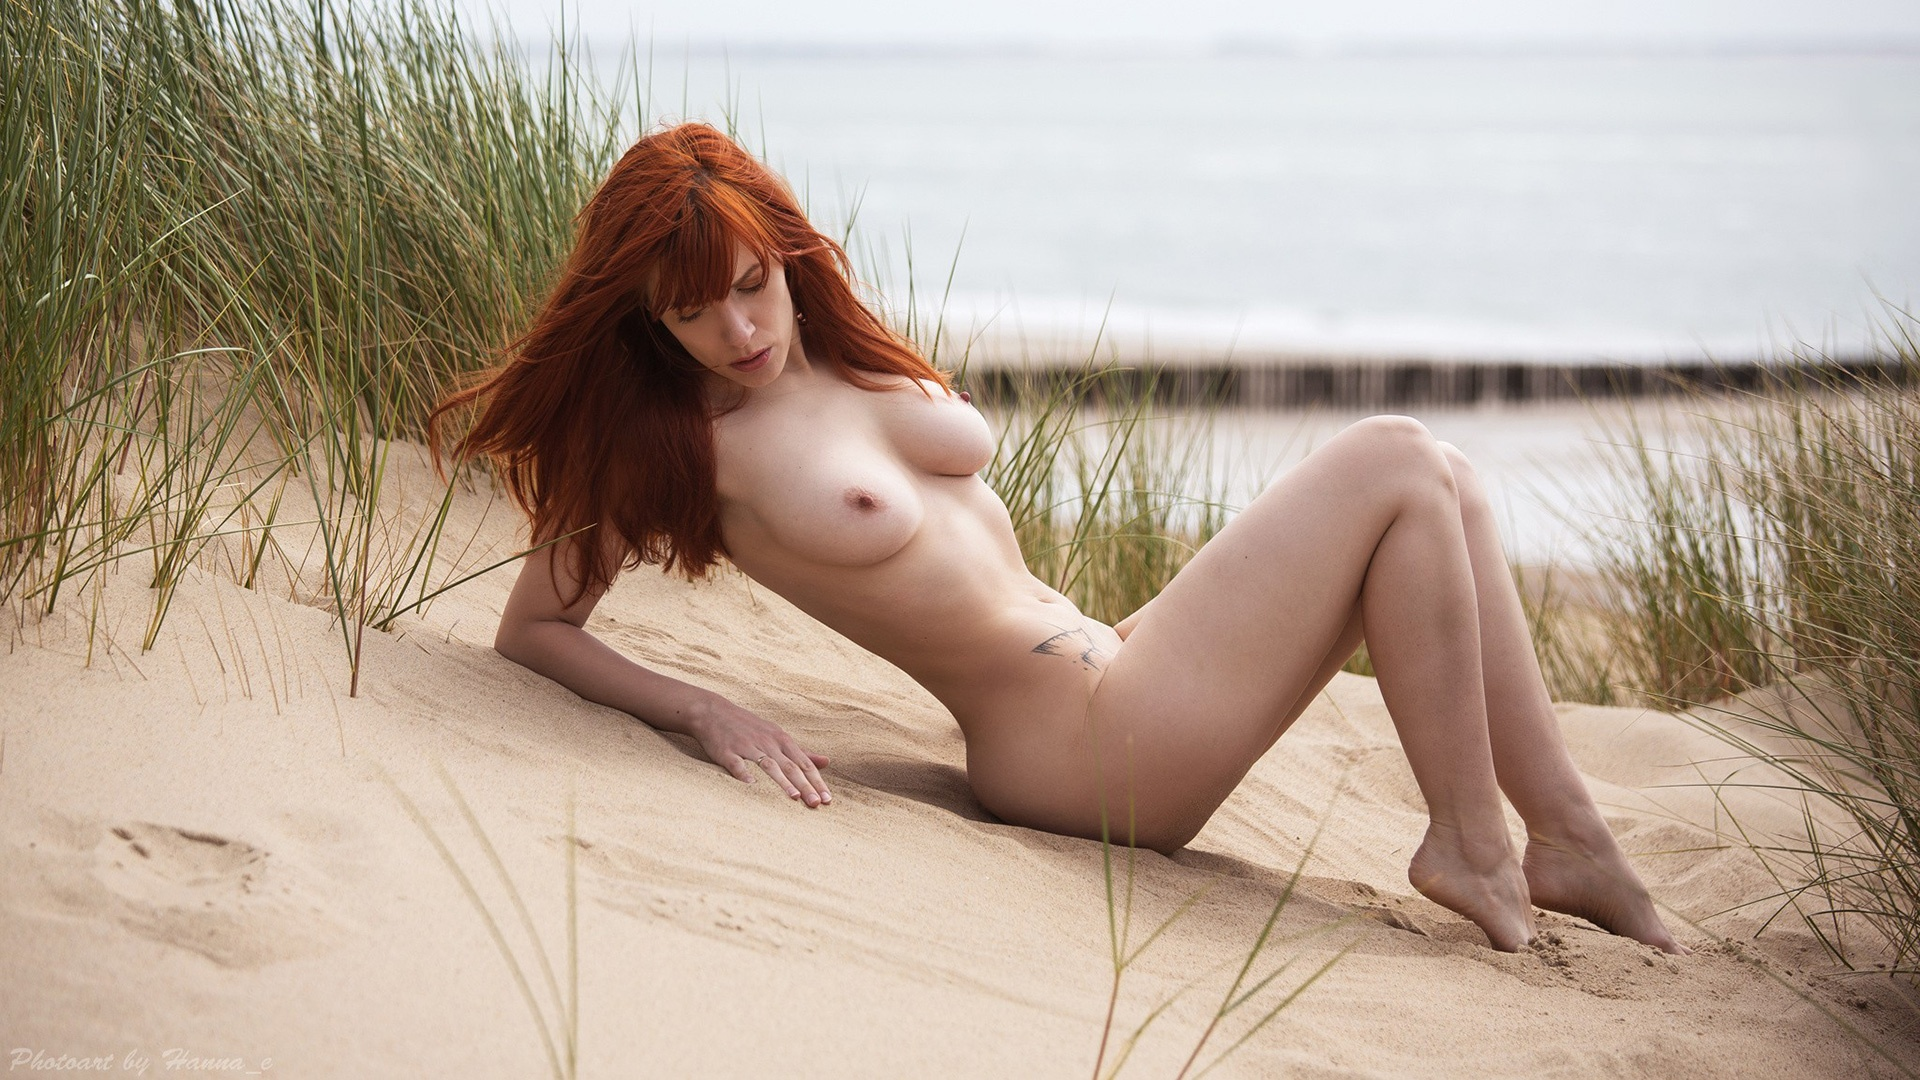 Was and Hot redhead girls naked ariel you